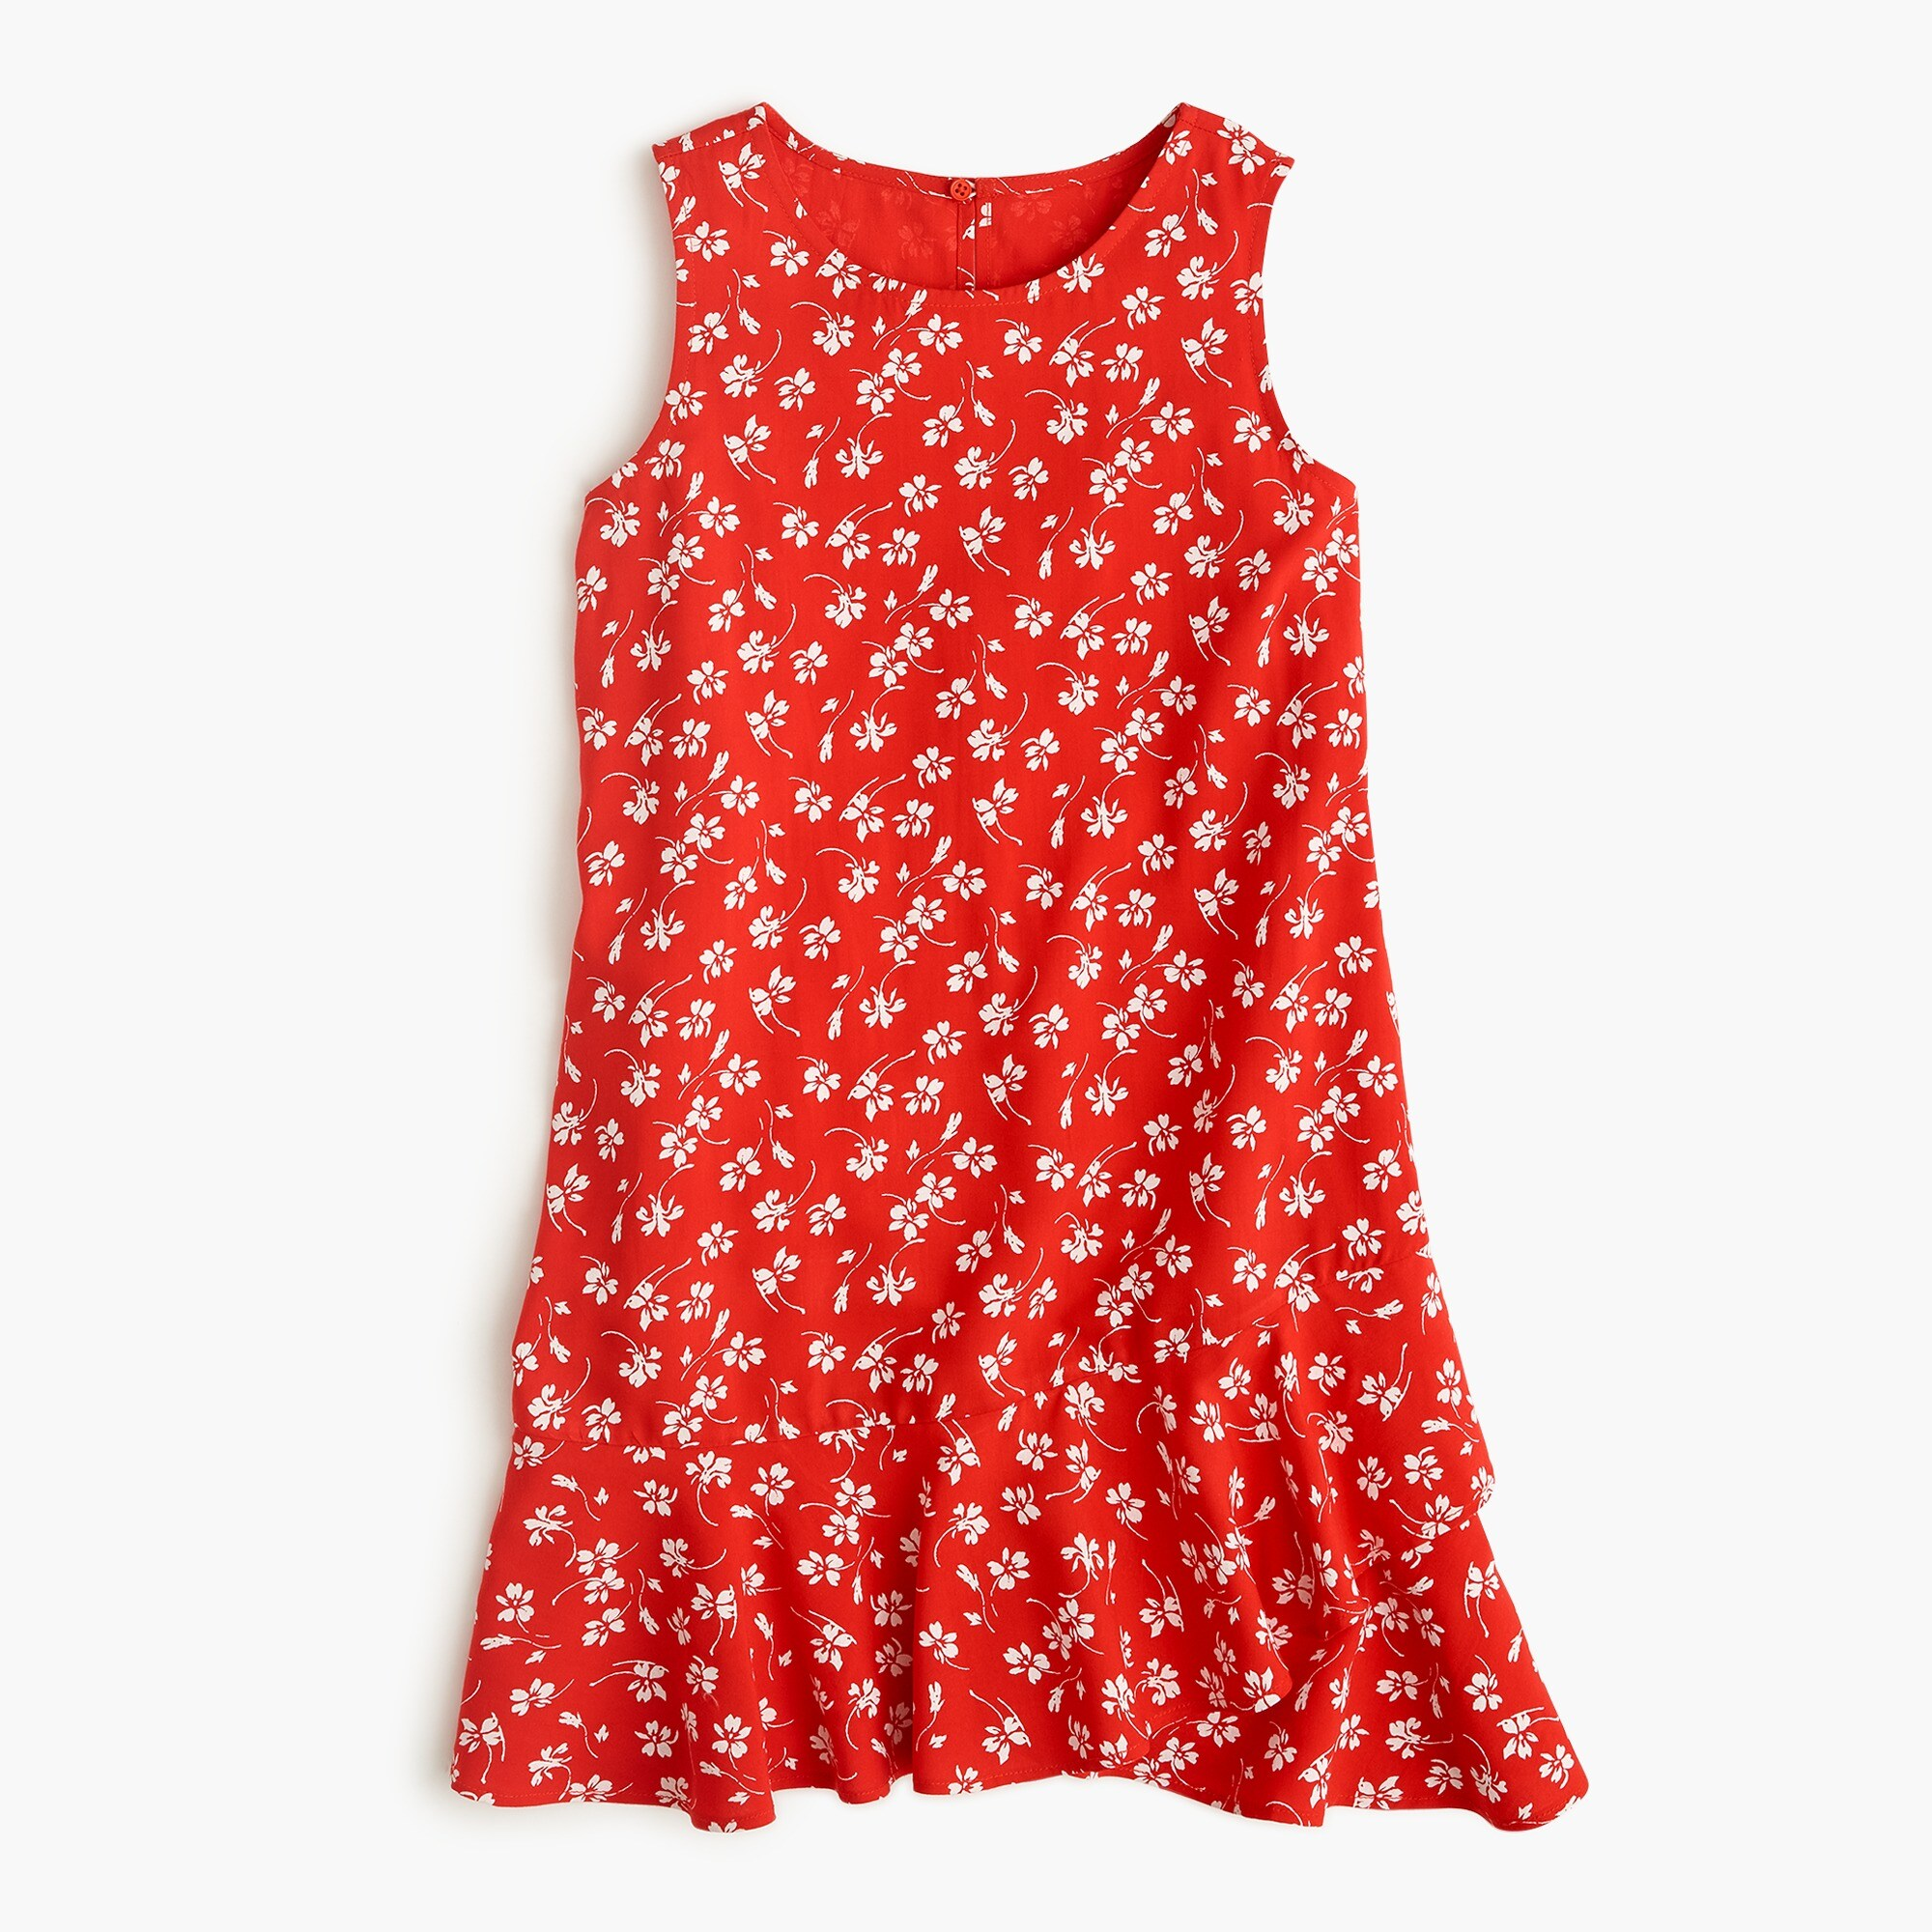 Image 1 for Girls' ruffle-hem dress in fresh daisies